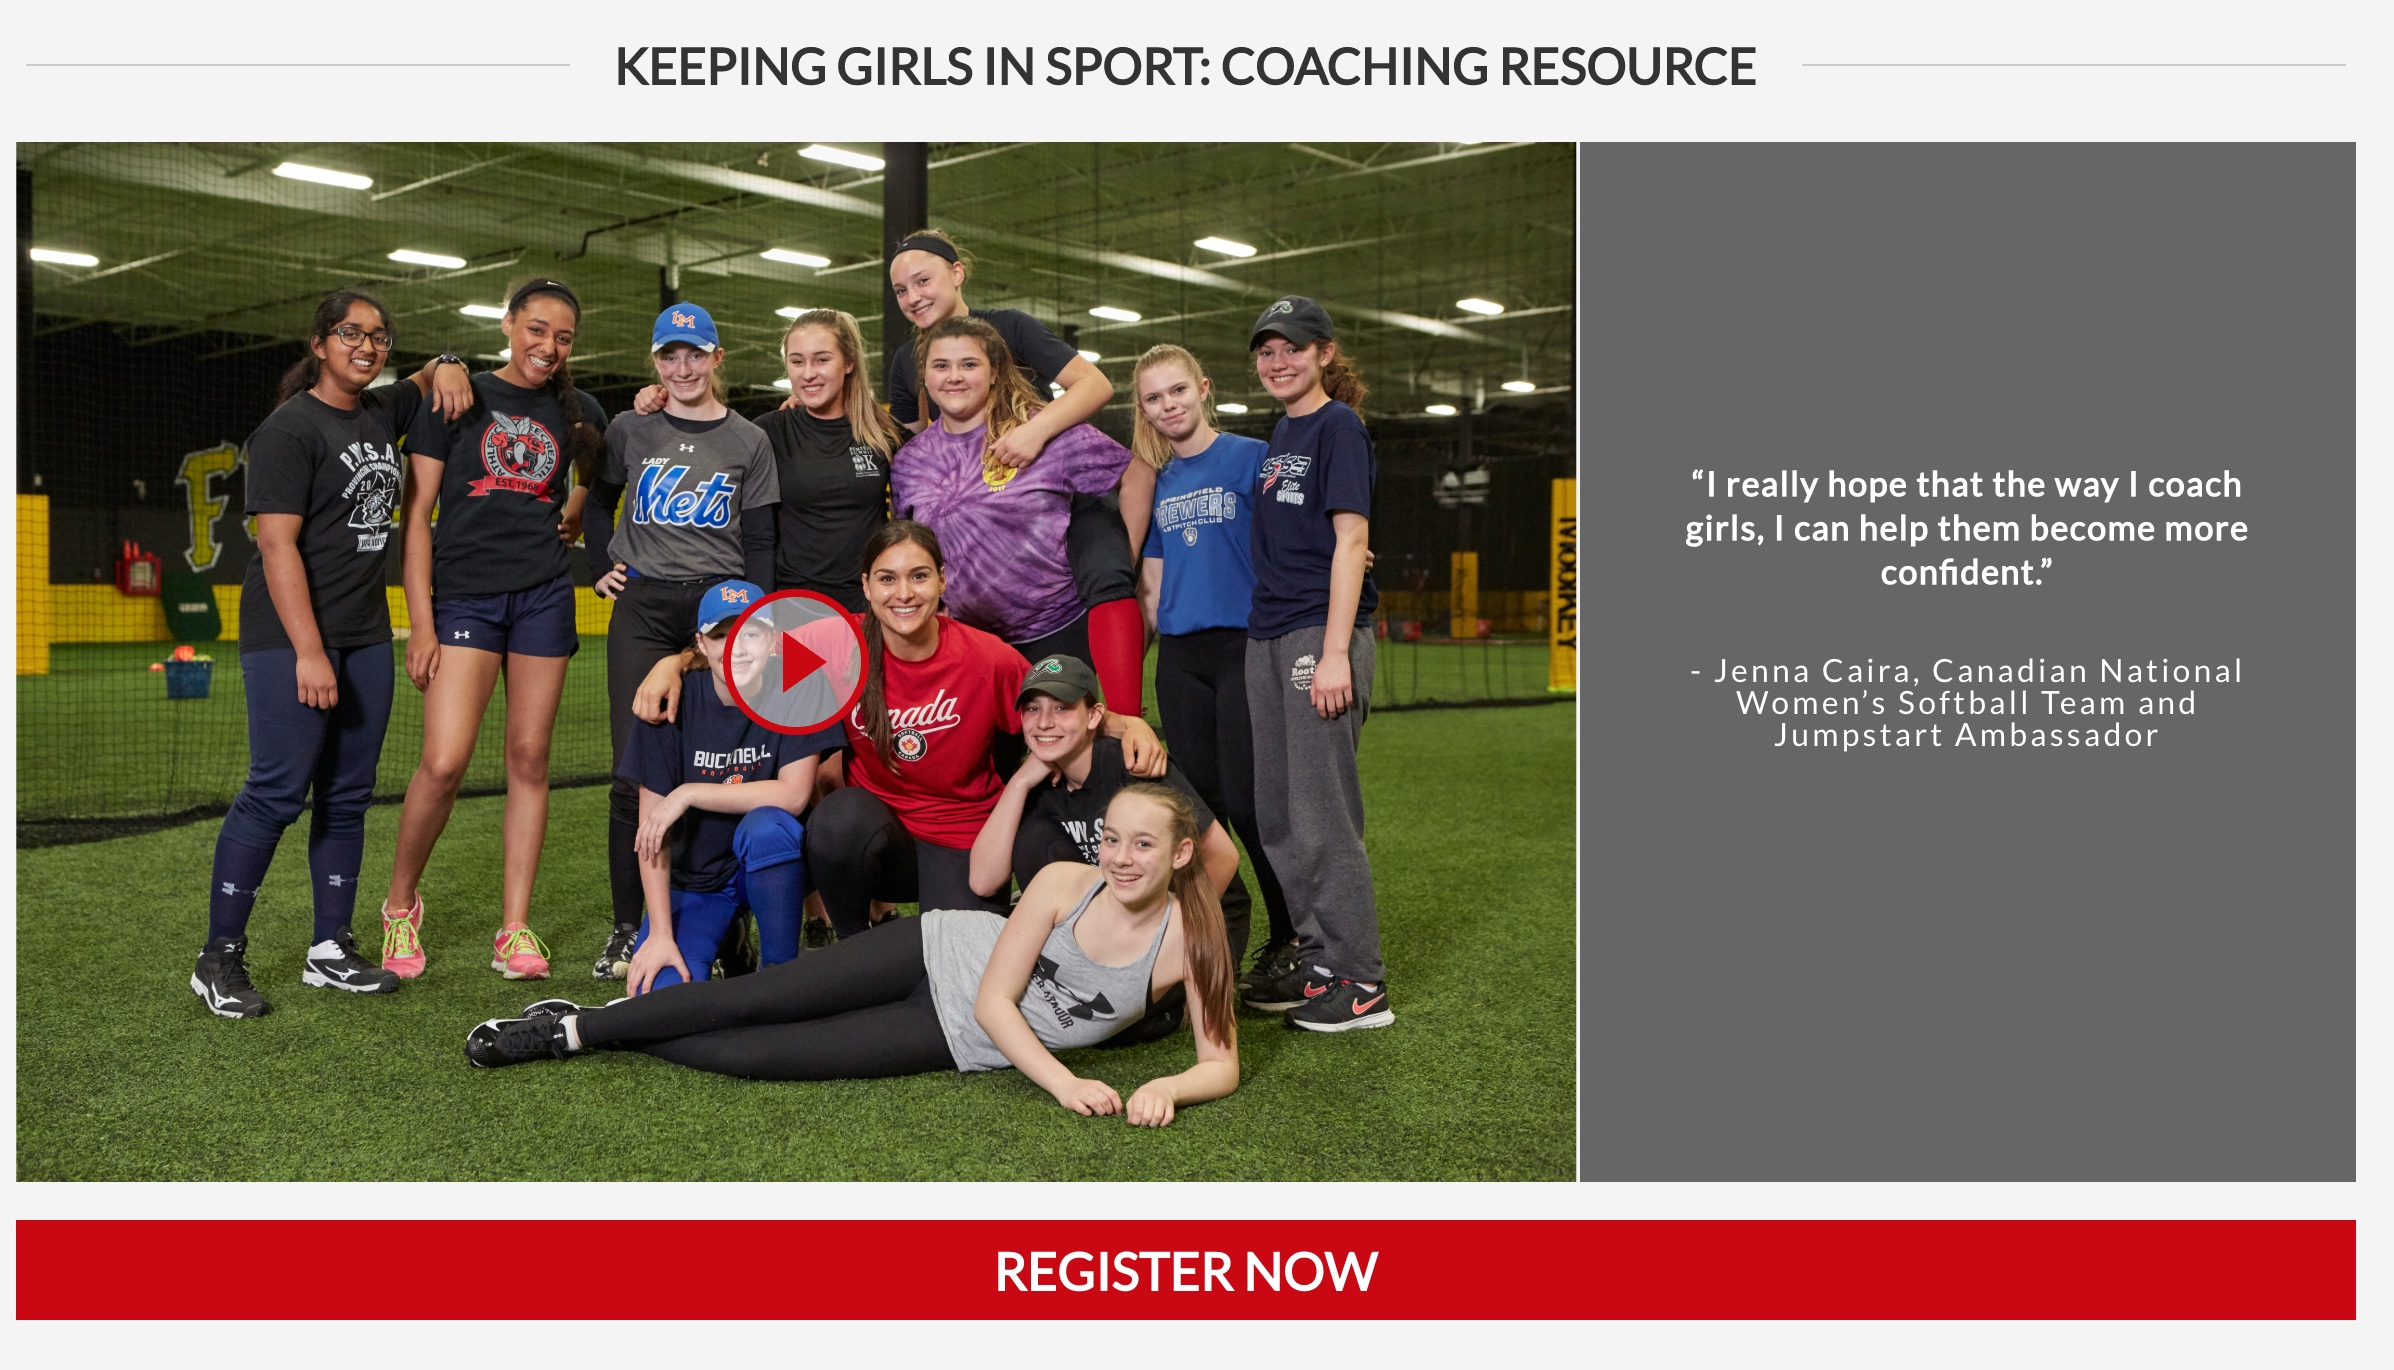 resepct group, harassment prevention training, abuse prevention in sport, sport abuse, girls, sport, coaching tools, coaching resources, athlete resources, coach training, abuse prevention training